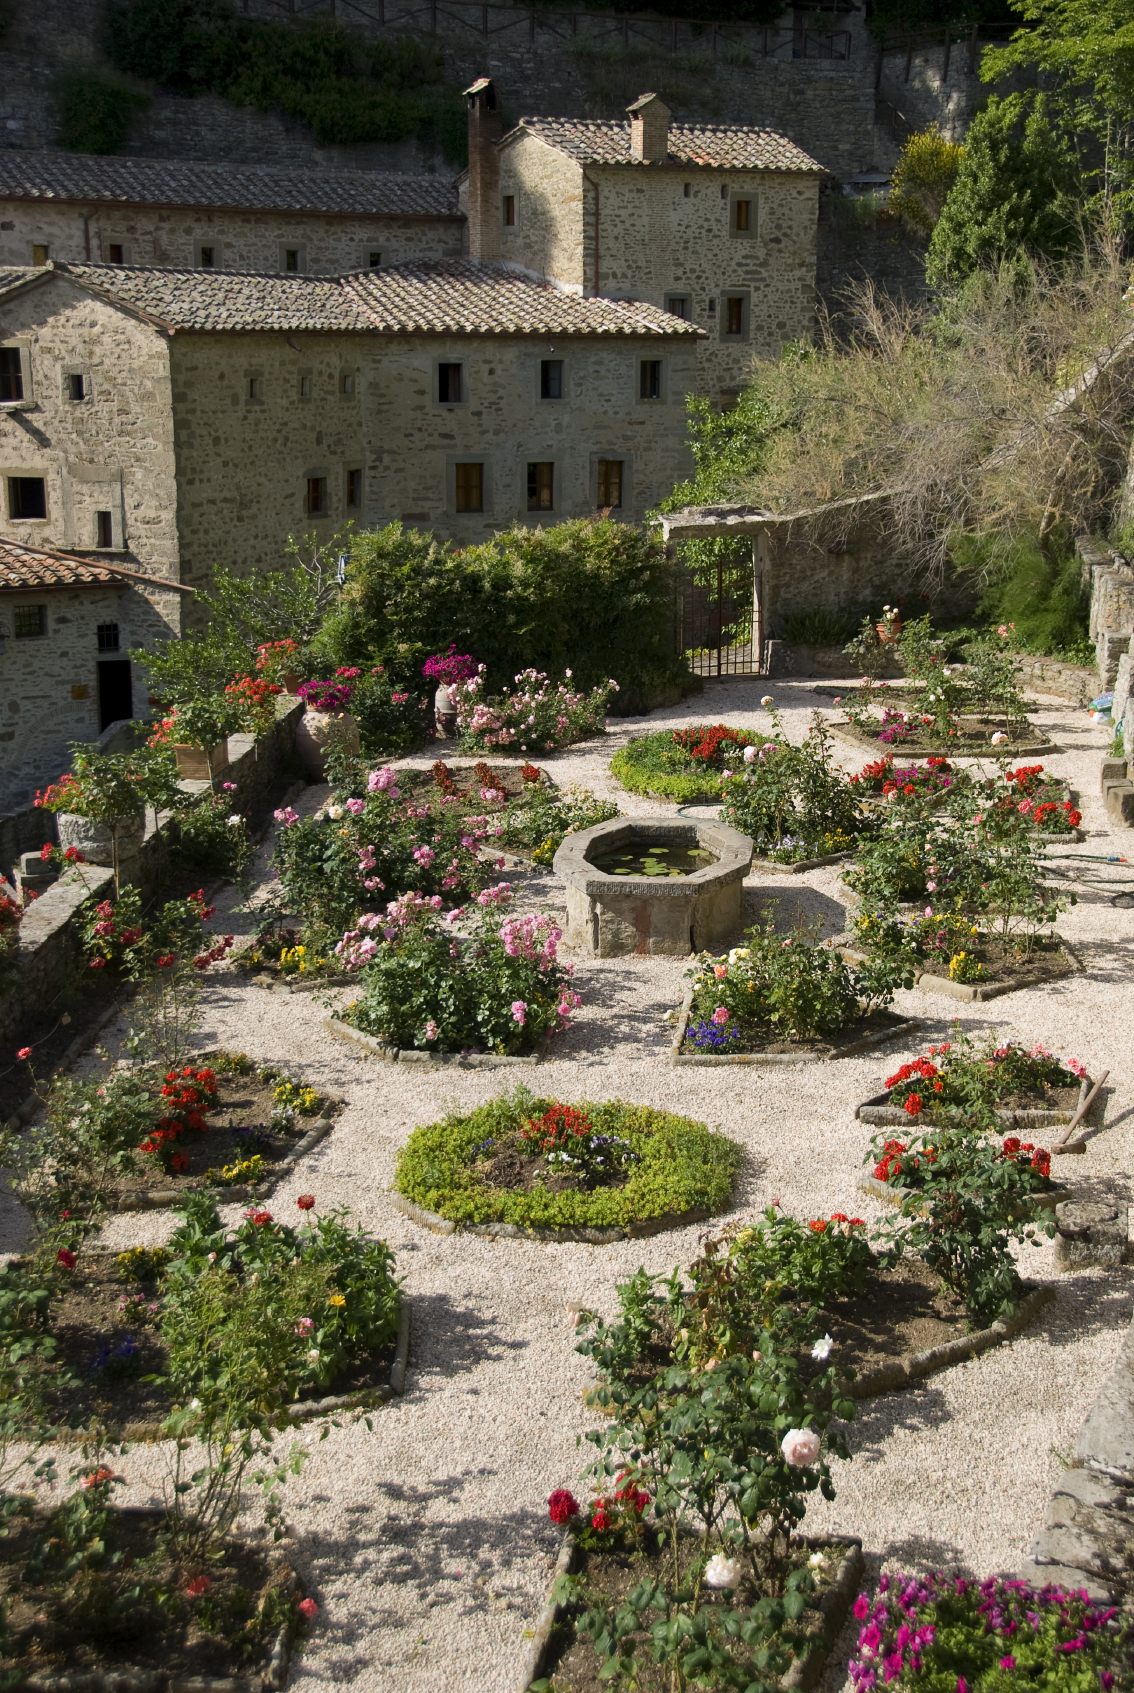 The Tuscan Garden Places Itineraries Trips Events